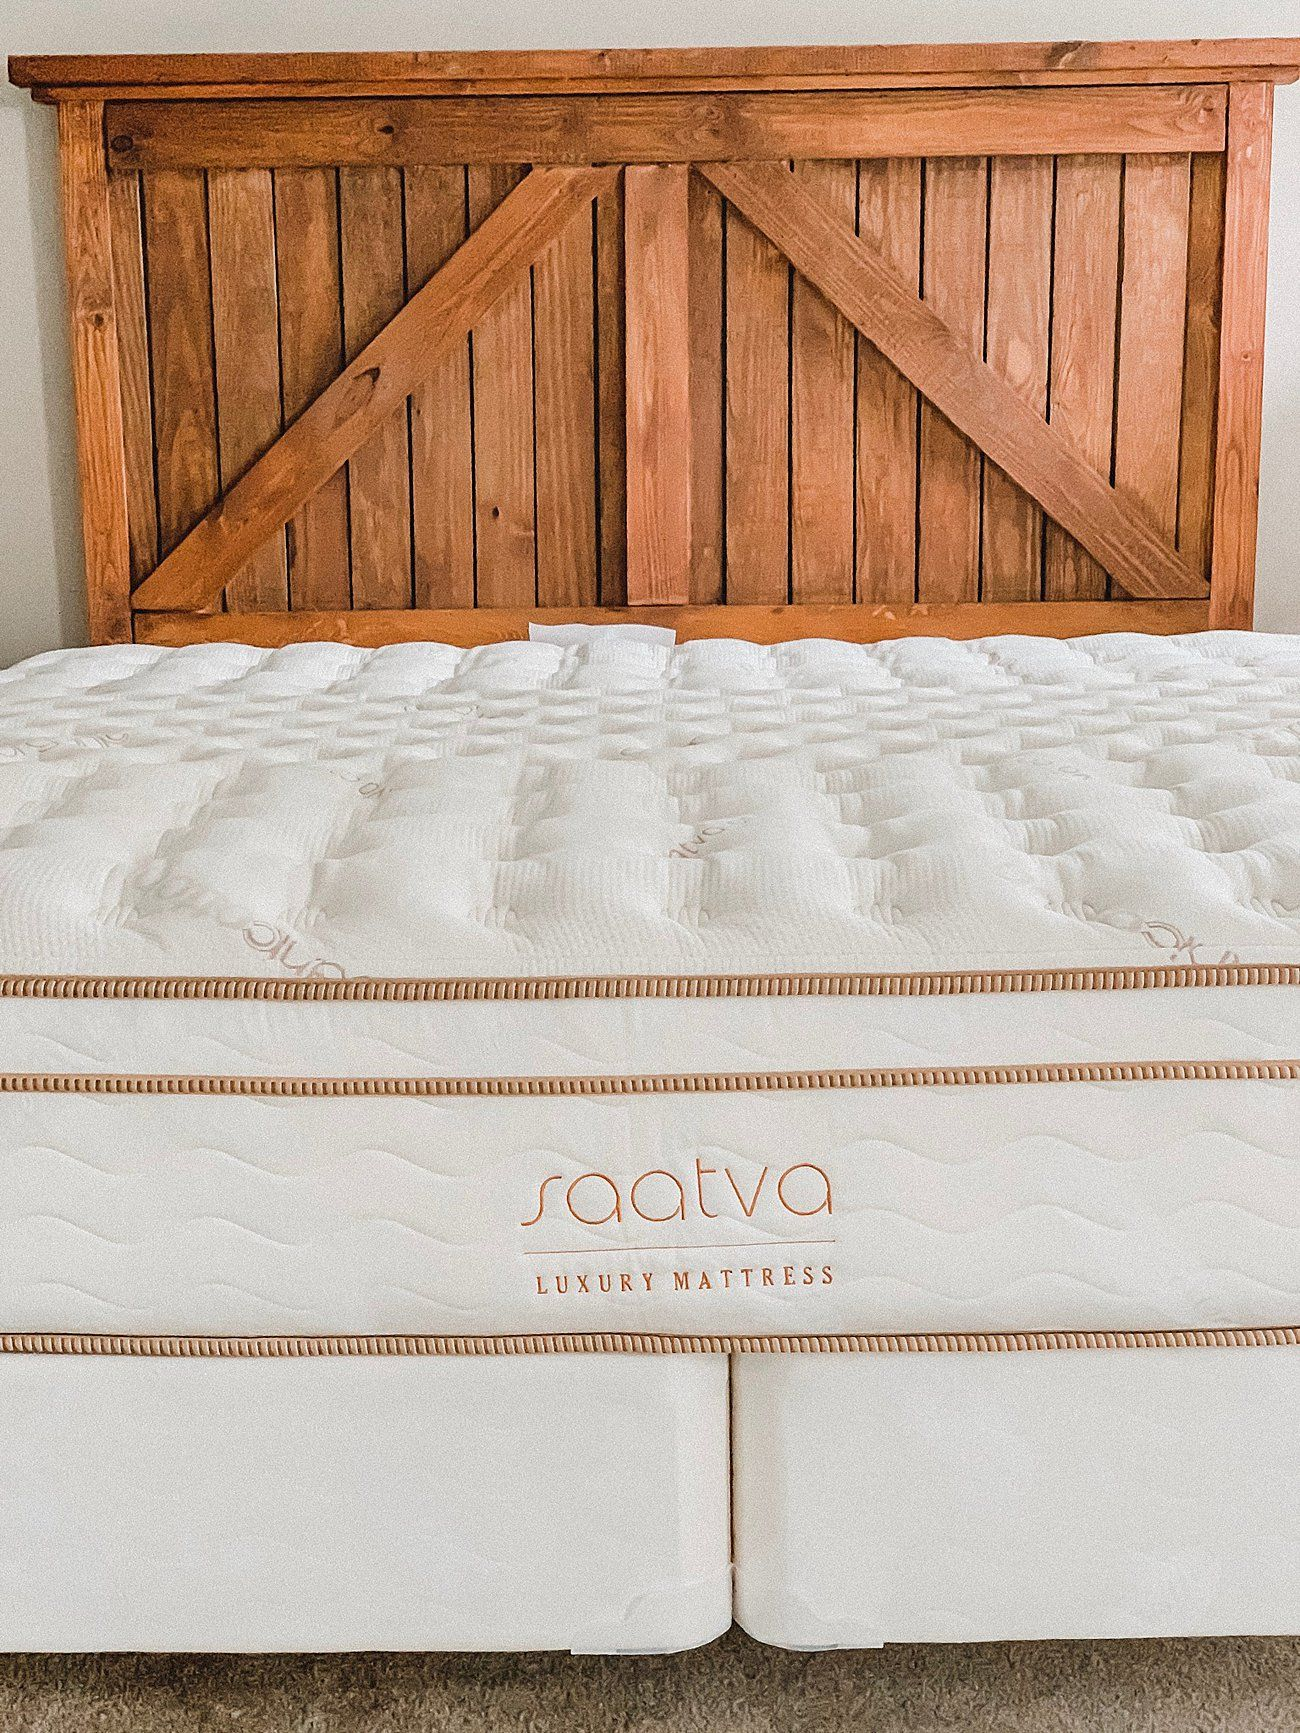 We Finally Got A King Bed Saatva Mattress Review Mattresses